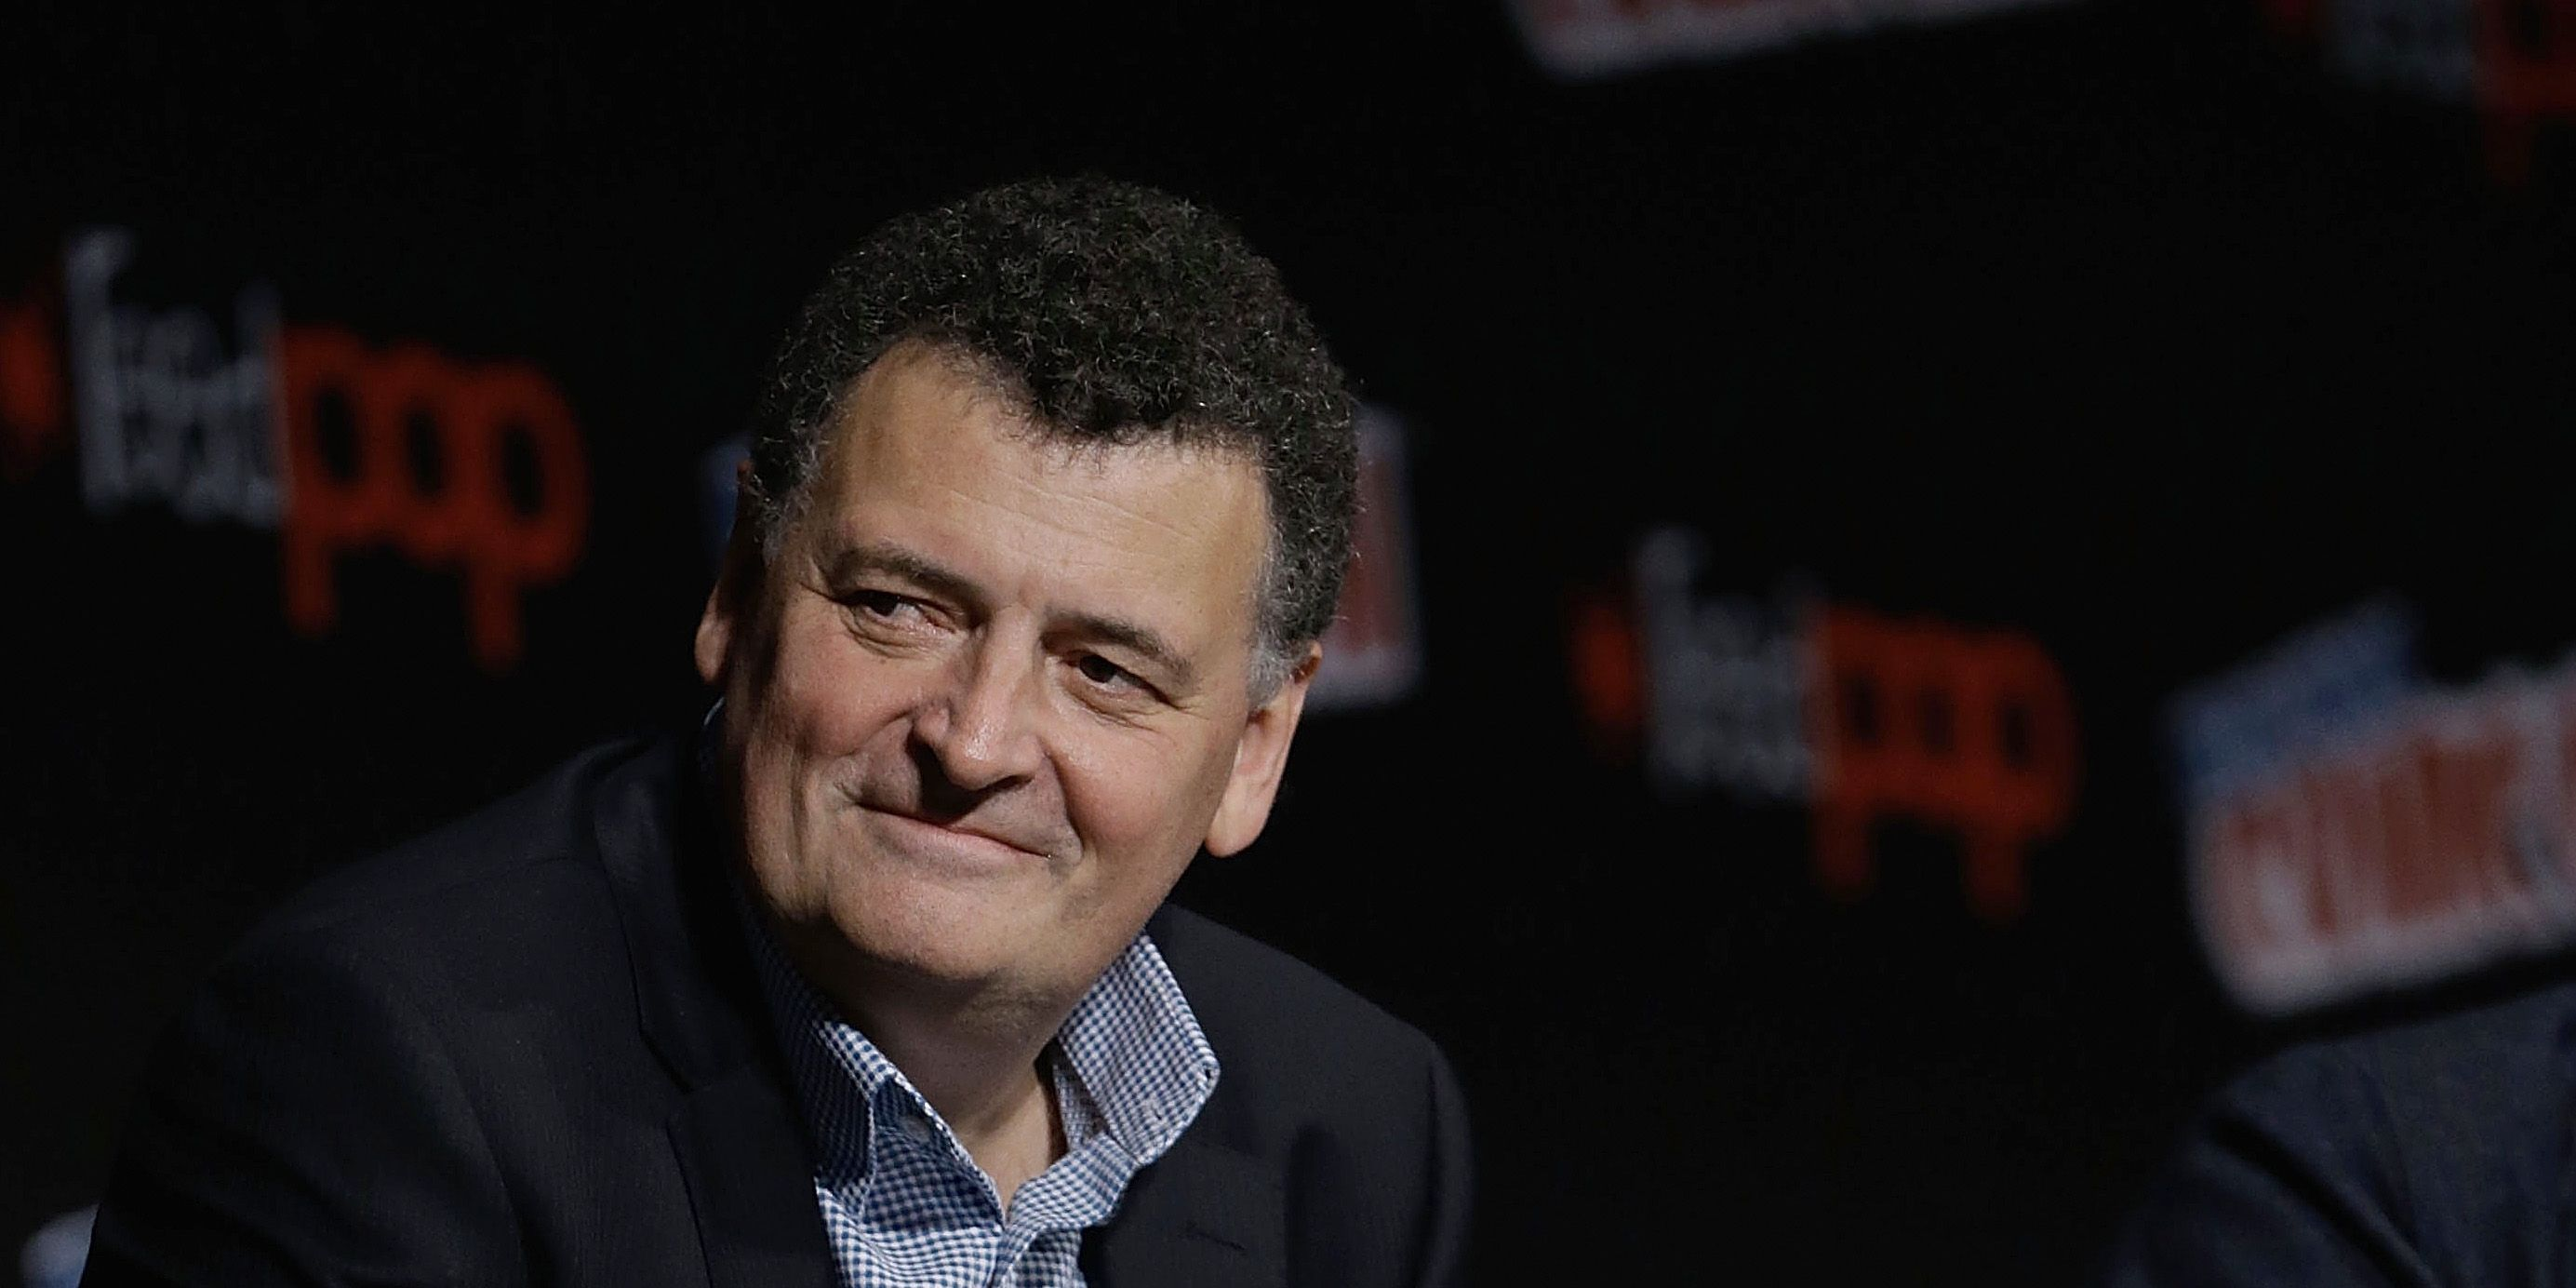 Steven Moffat attends the Doctor Who panel during the 2016 New York Comic Con